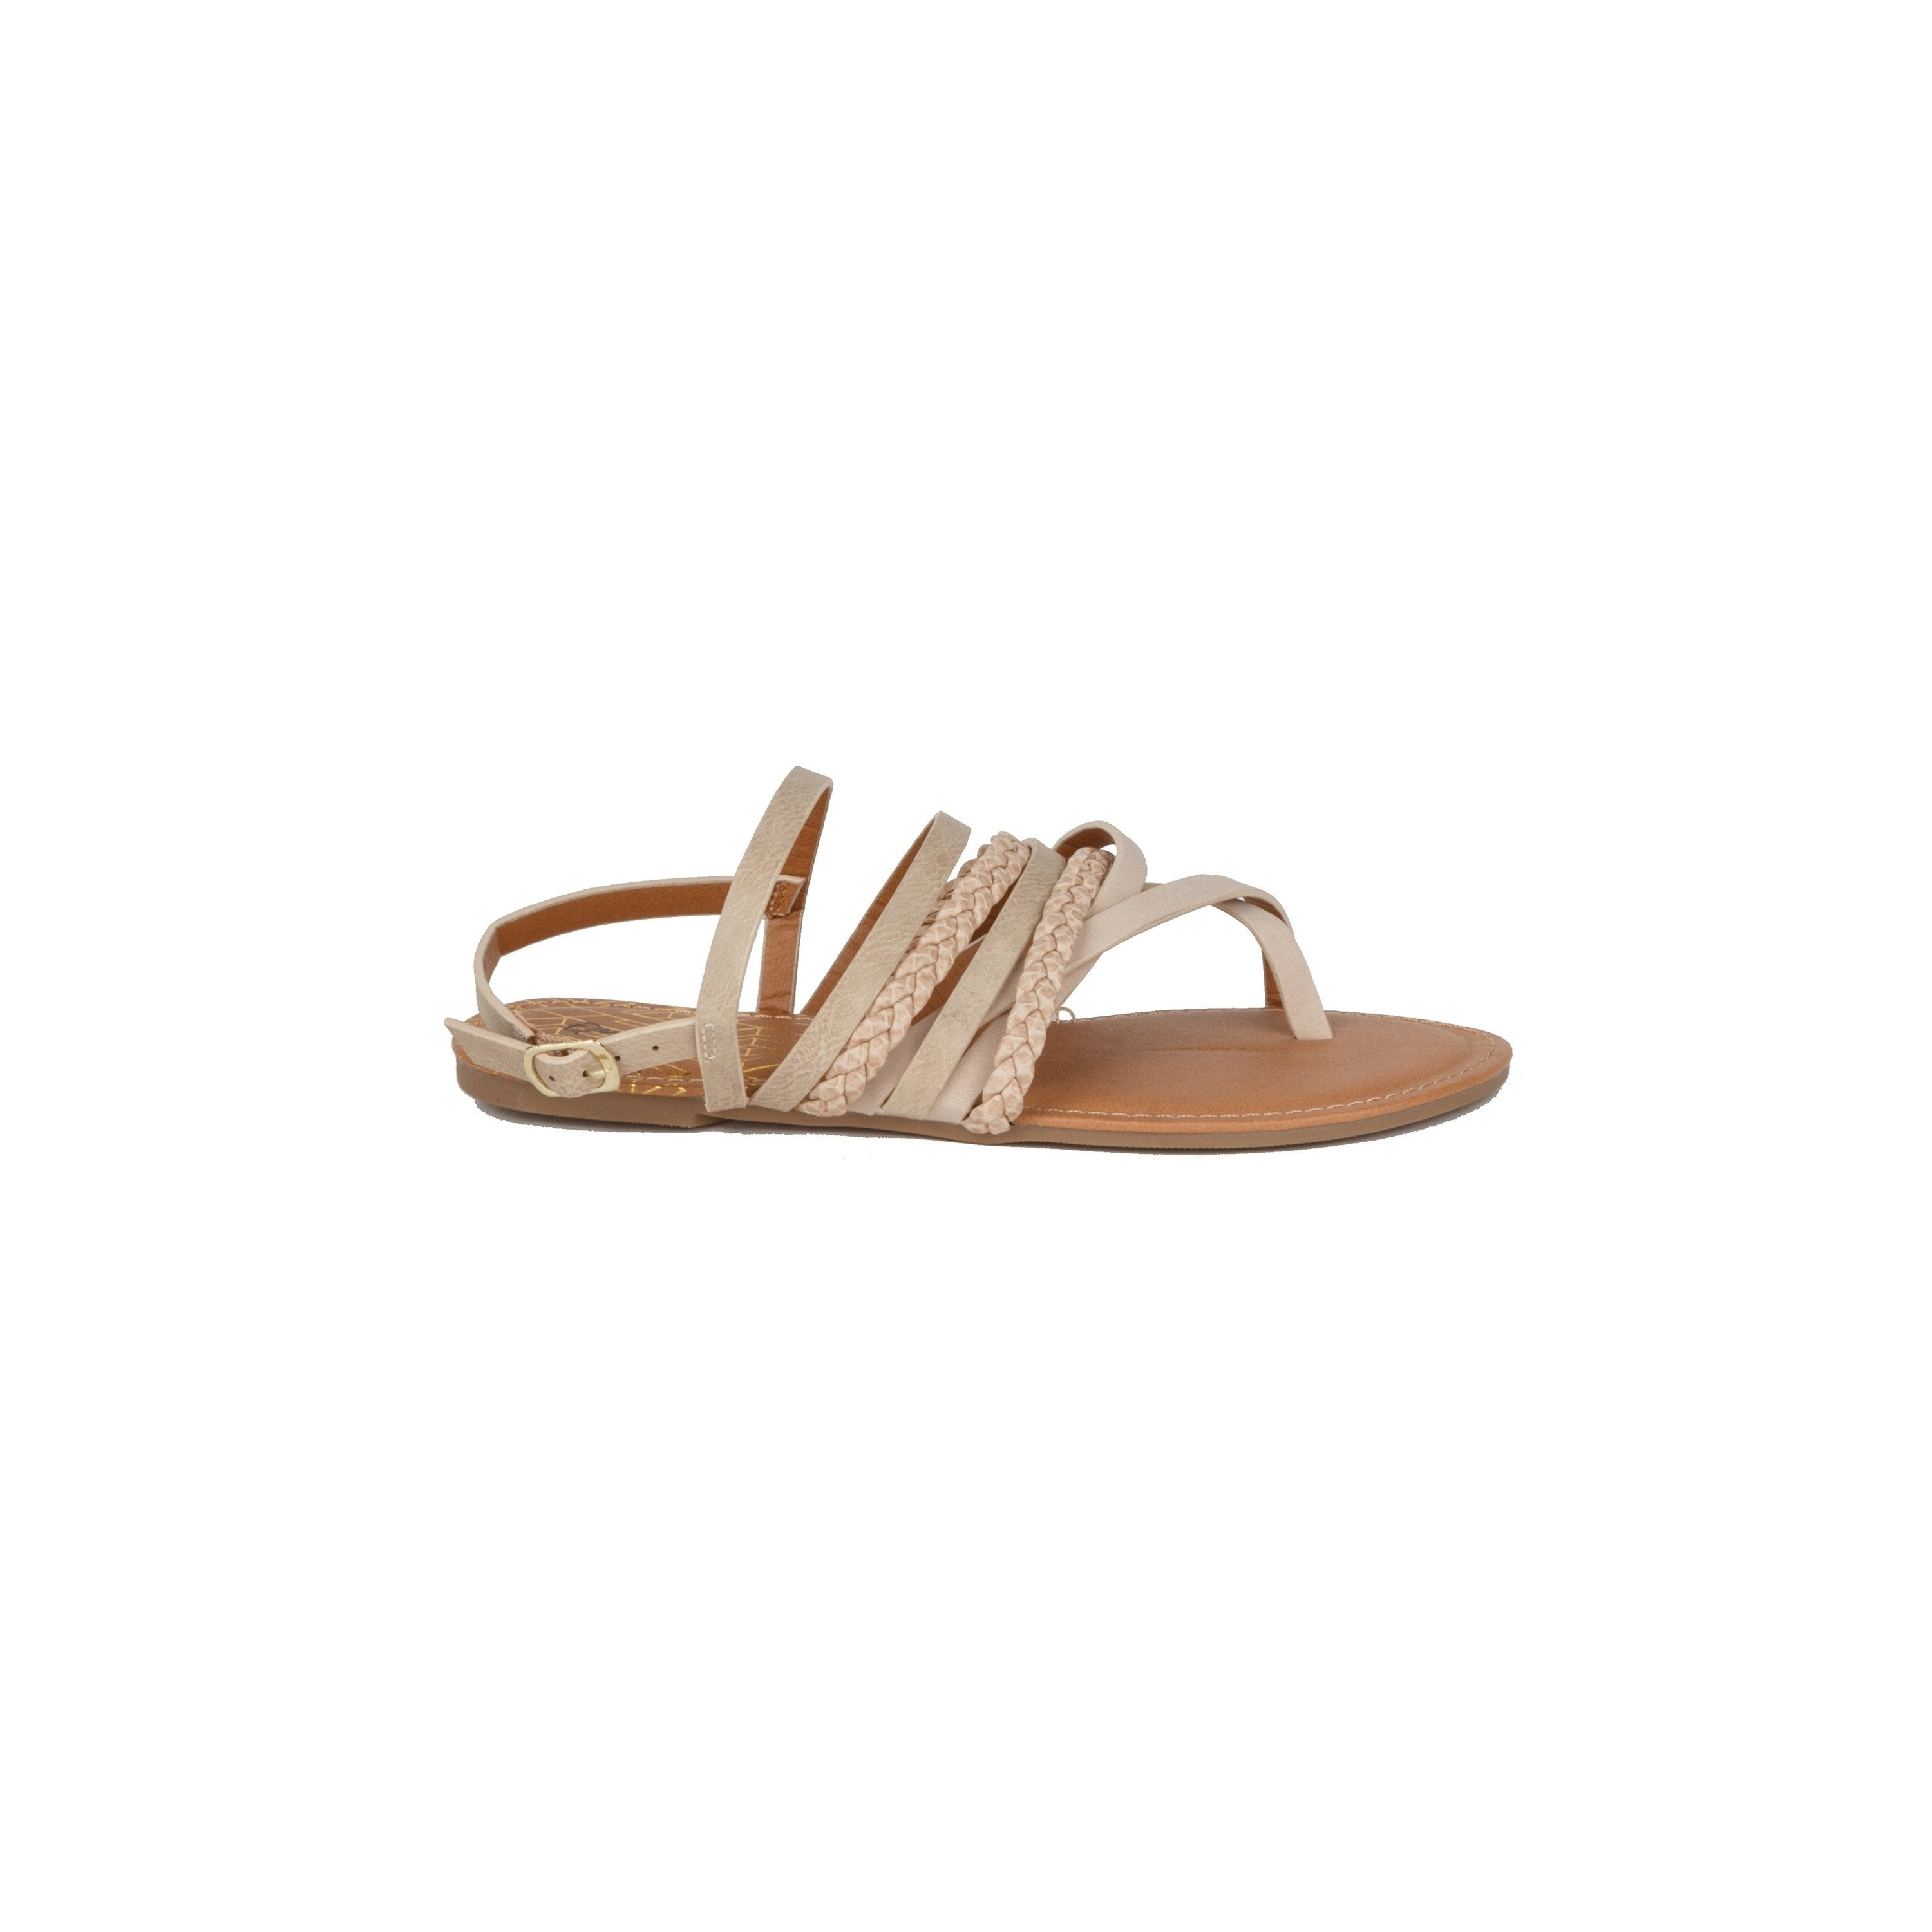 977b69280 Shop Xehar Womens Fashion Ankle Strap Strappy Beach Summer Flat Sandal -  Free Shipping On Orders Over  45 - Overstock - 21164660